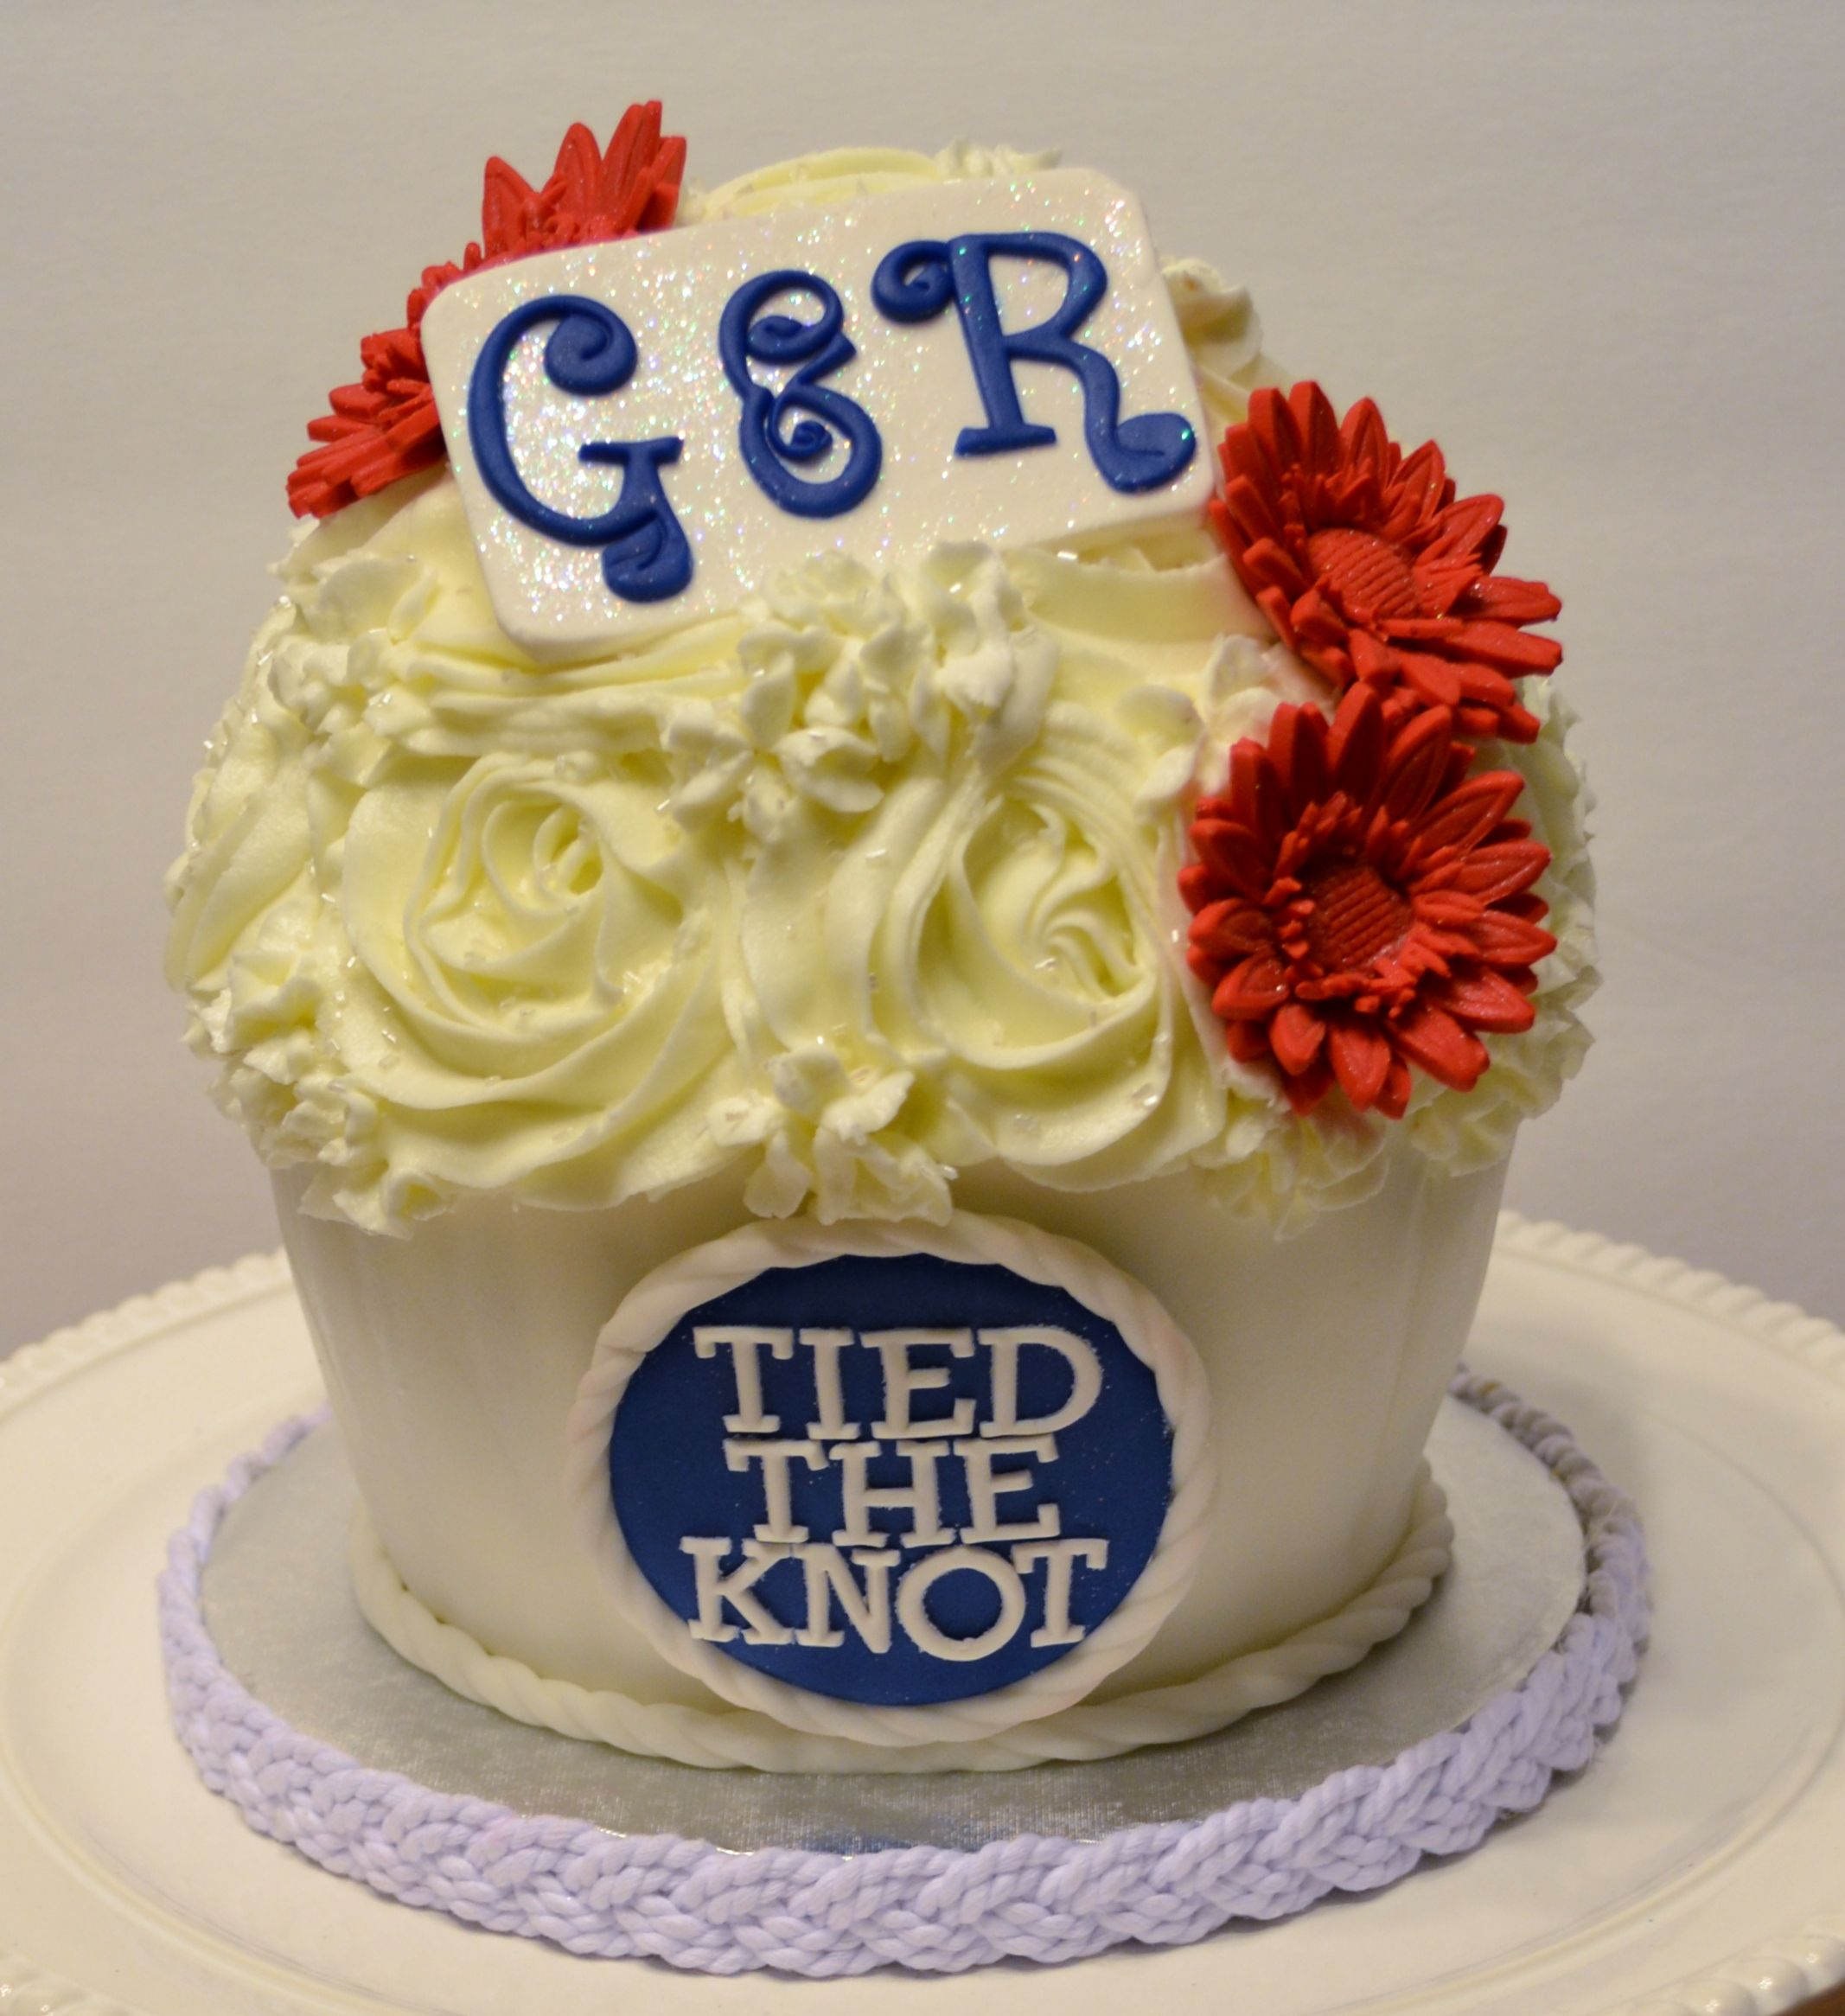 Tied the knot wedding cake giant cupcake for nautical wedding on a ...